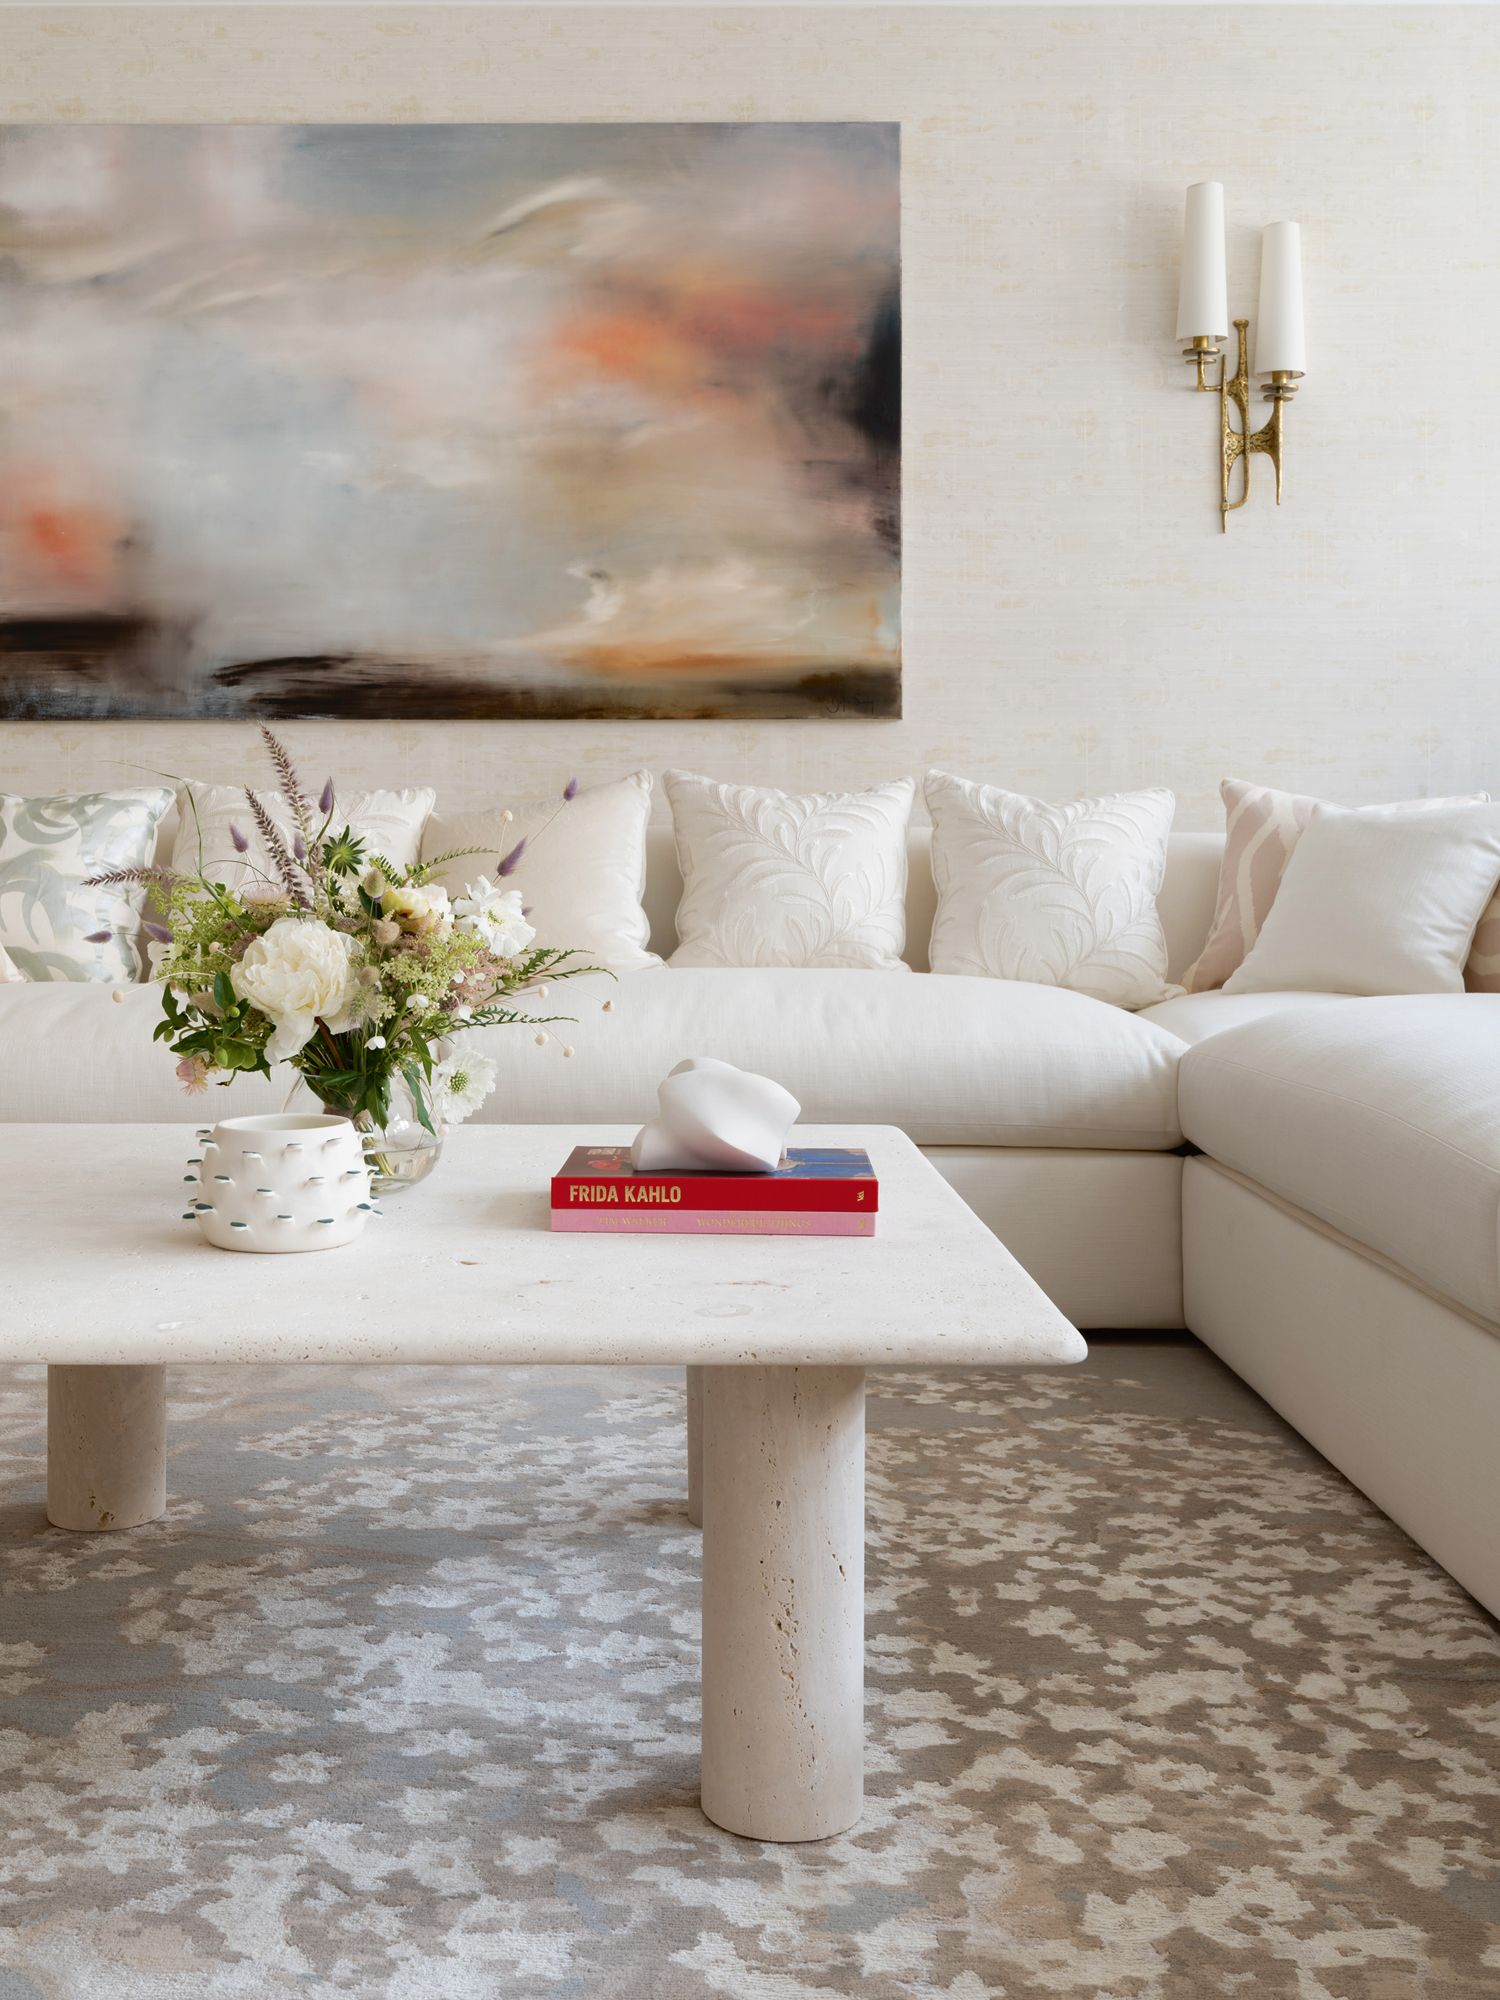 An abstract work by UK artist J R Swaby livens up a corner of the living room